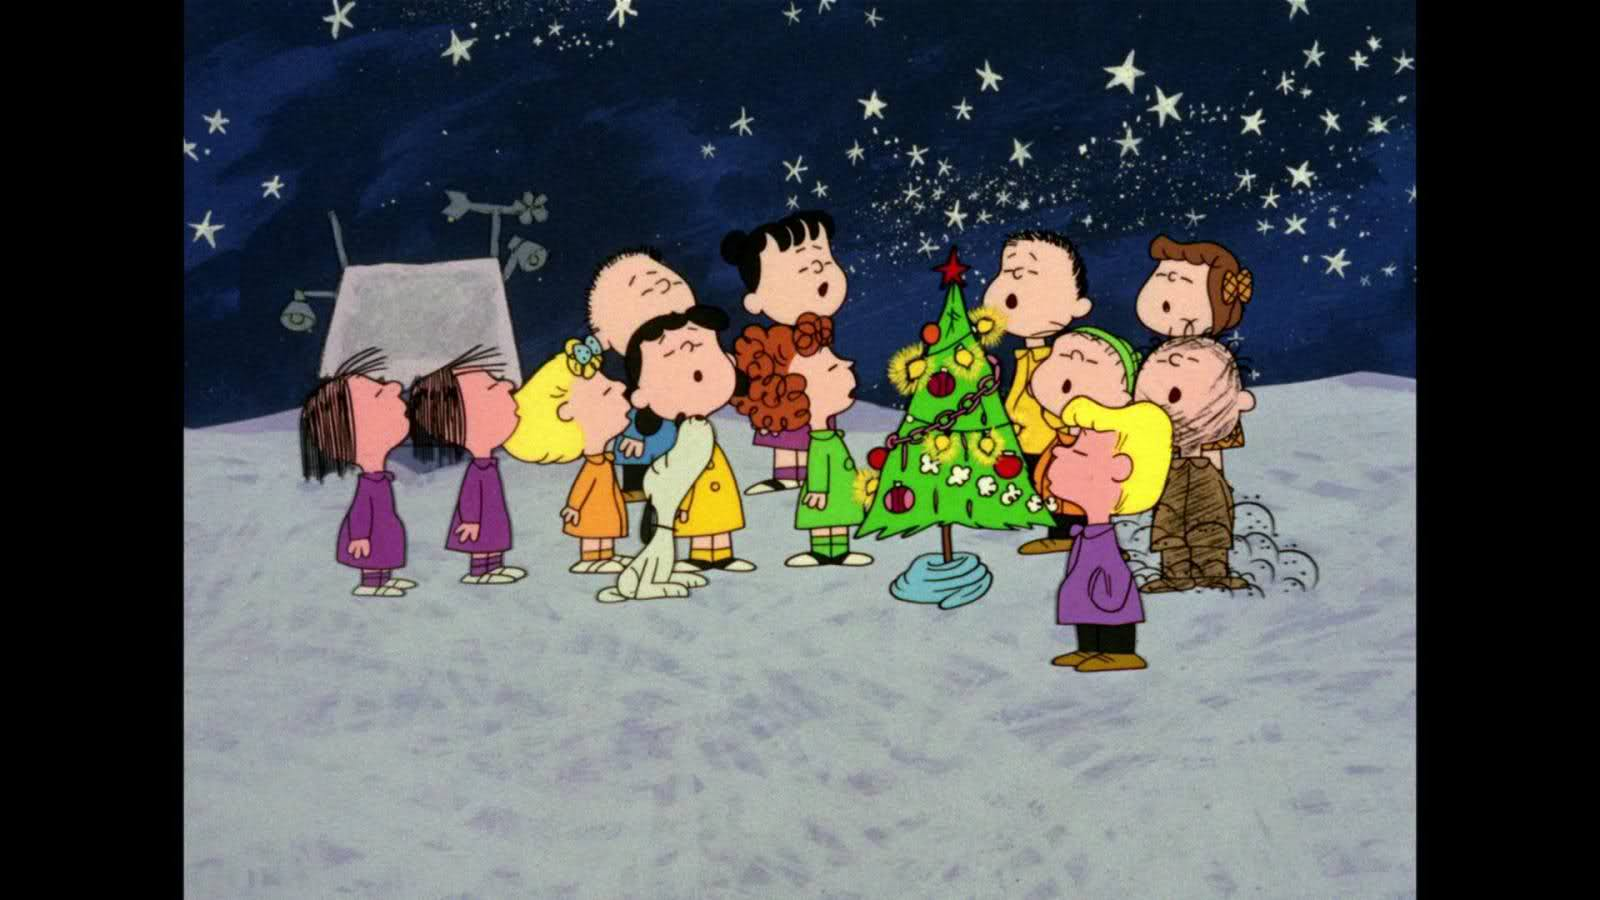 peanuts christmas wallpaper Pictures peanuts christmas wallpaper 1600x900